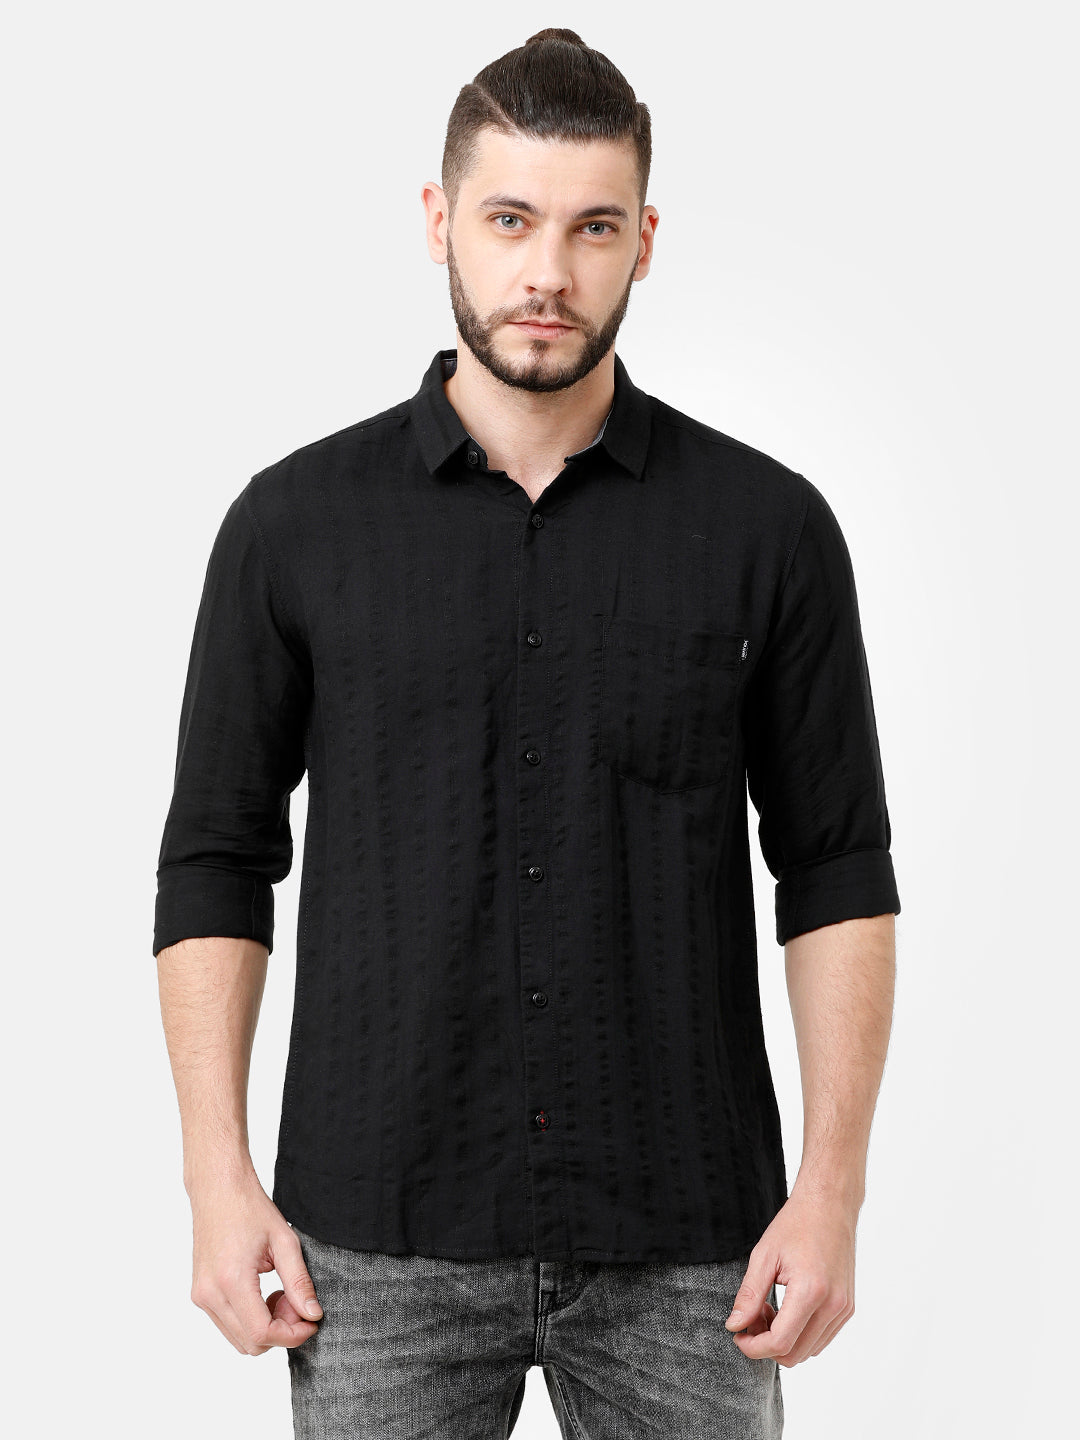 Linen - Self Stripes Dobby Shirt